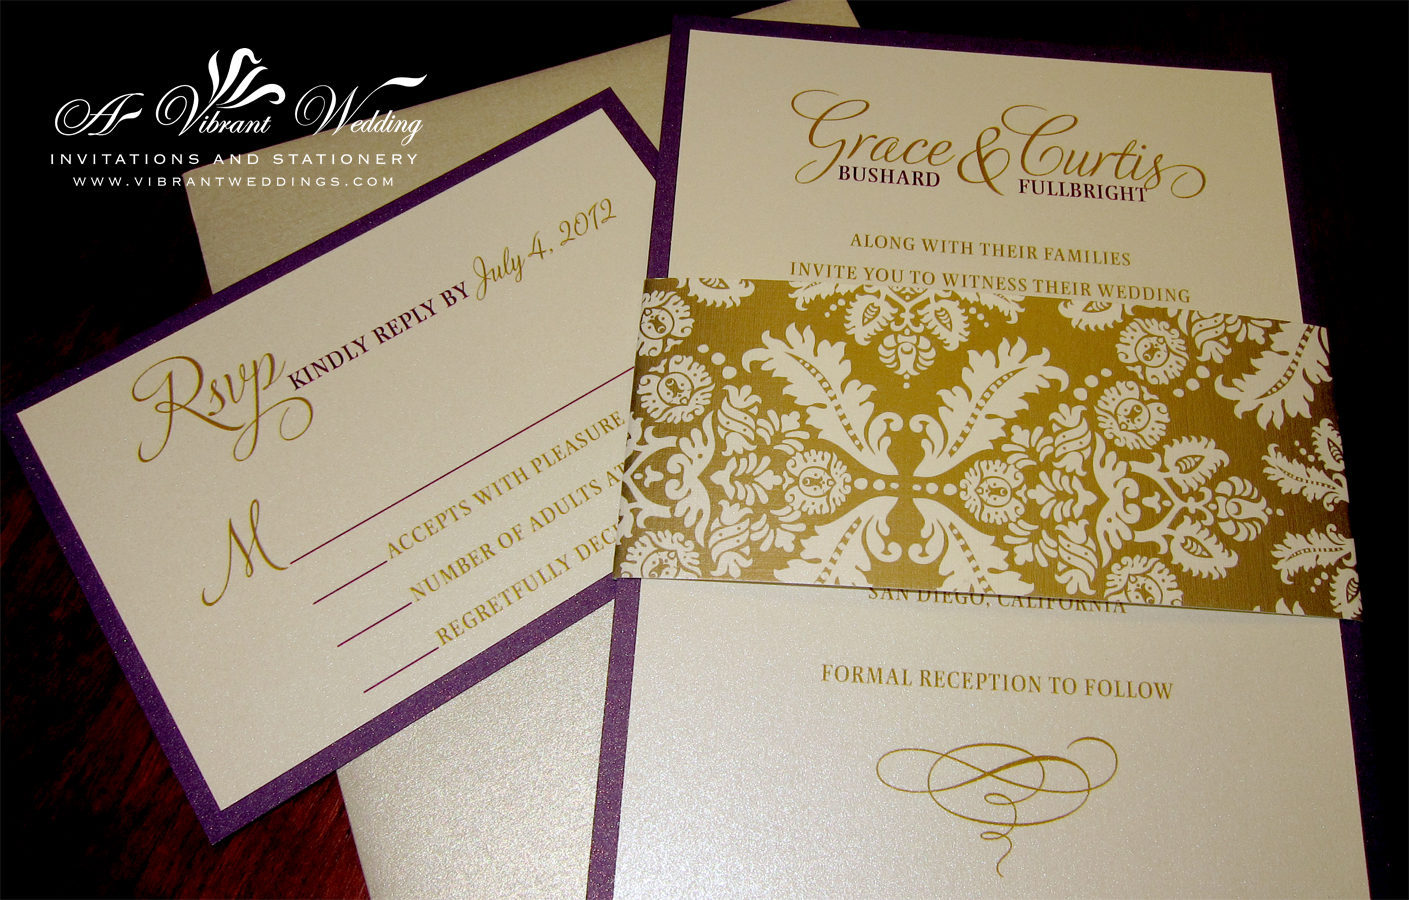 Purple Wedding Invitation A Vibrant Wedding – Gold and Purple Wedding Invitations